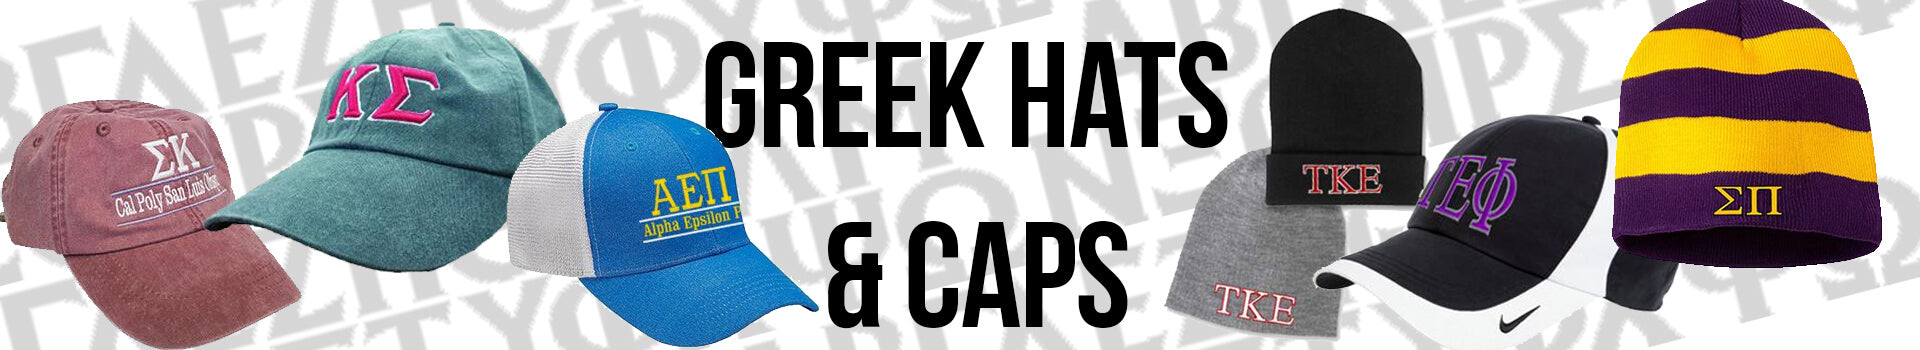 Custom Embroidered and Printed Greek Hats, Caps, and Visors for Fraternities and Sororities